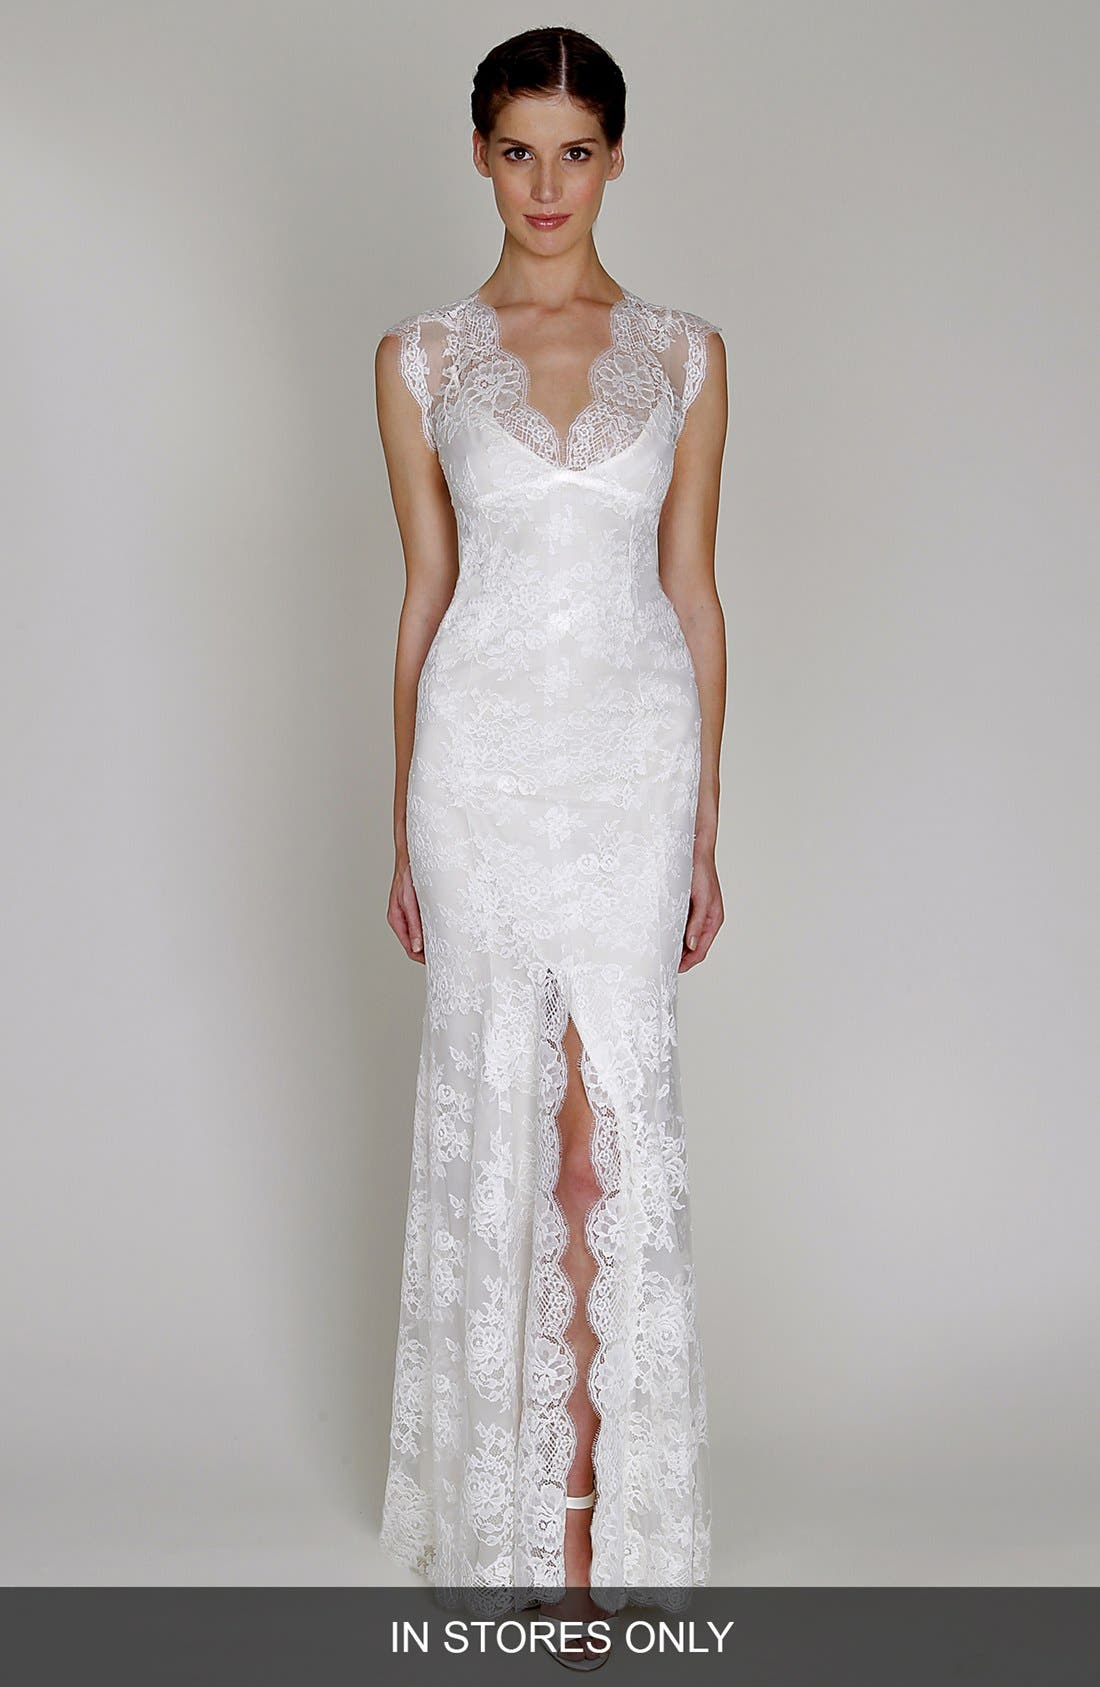 Main Image - BLISS Monique Lhuillier Chantilly Lace Open Back Wedding Dress (In Stores Only)